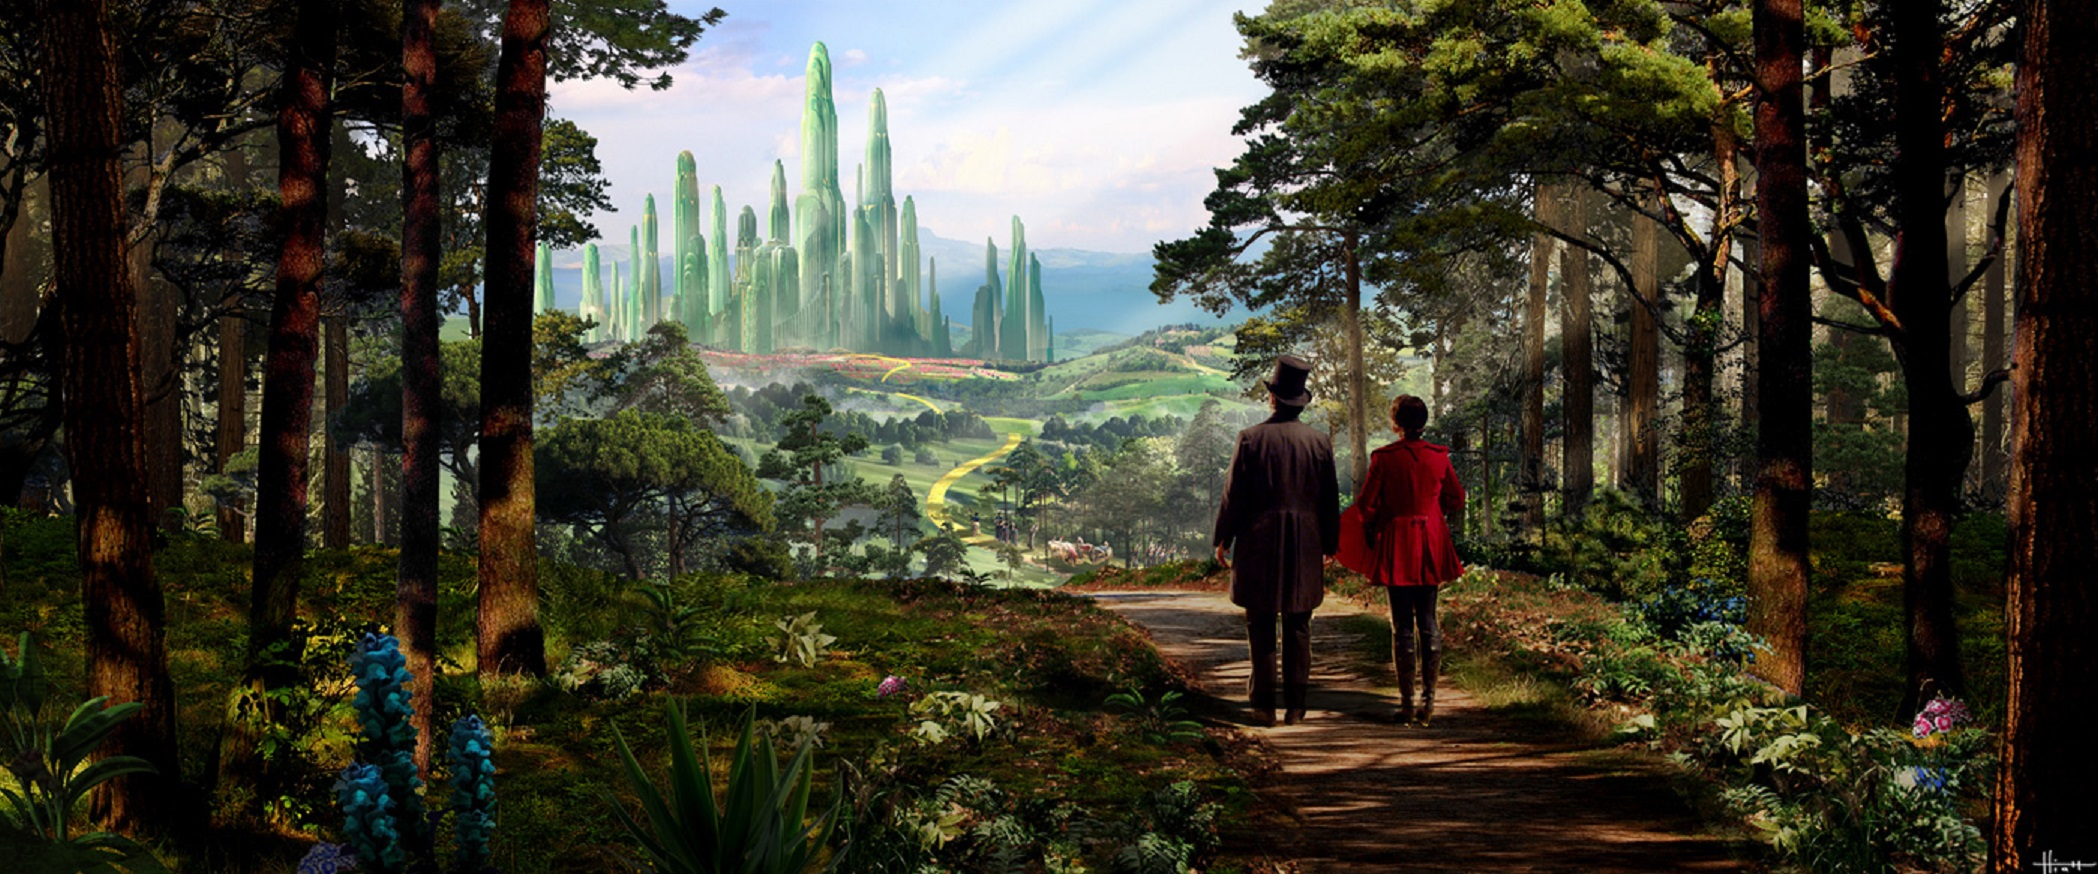 Towards the Emerald City - Oz and Theodora in Oz: The Great and Powerful (2013)